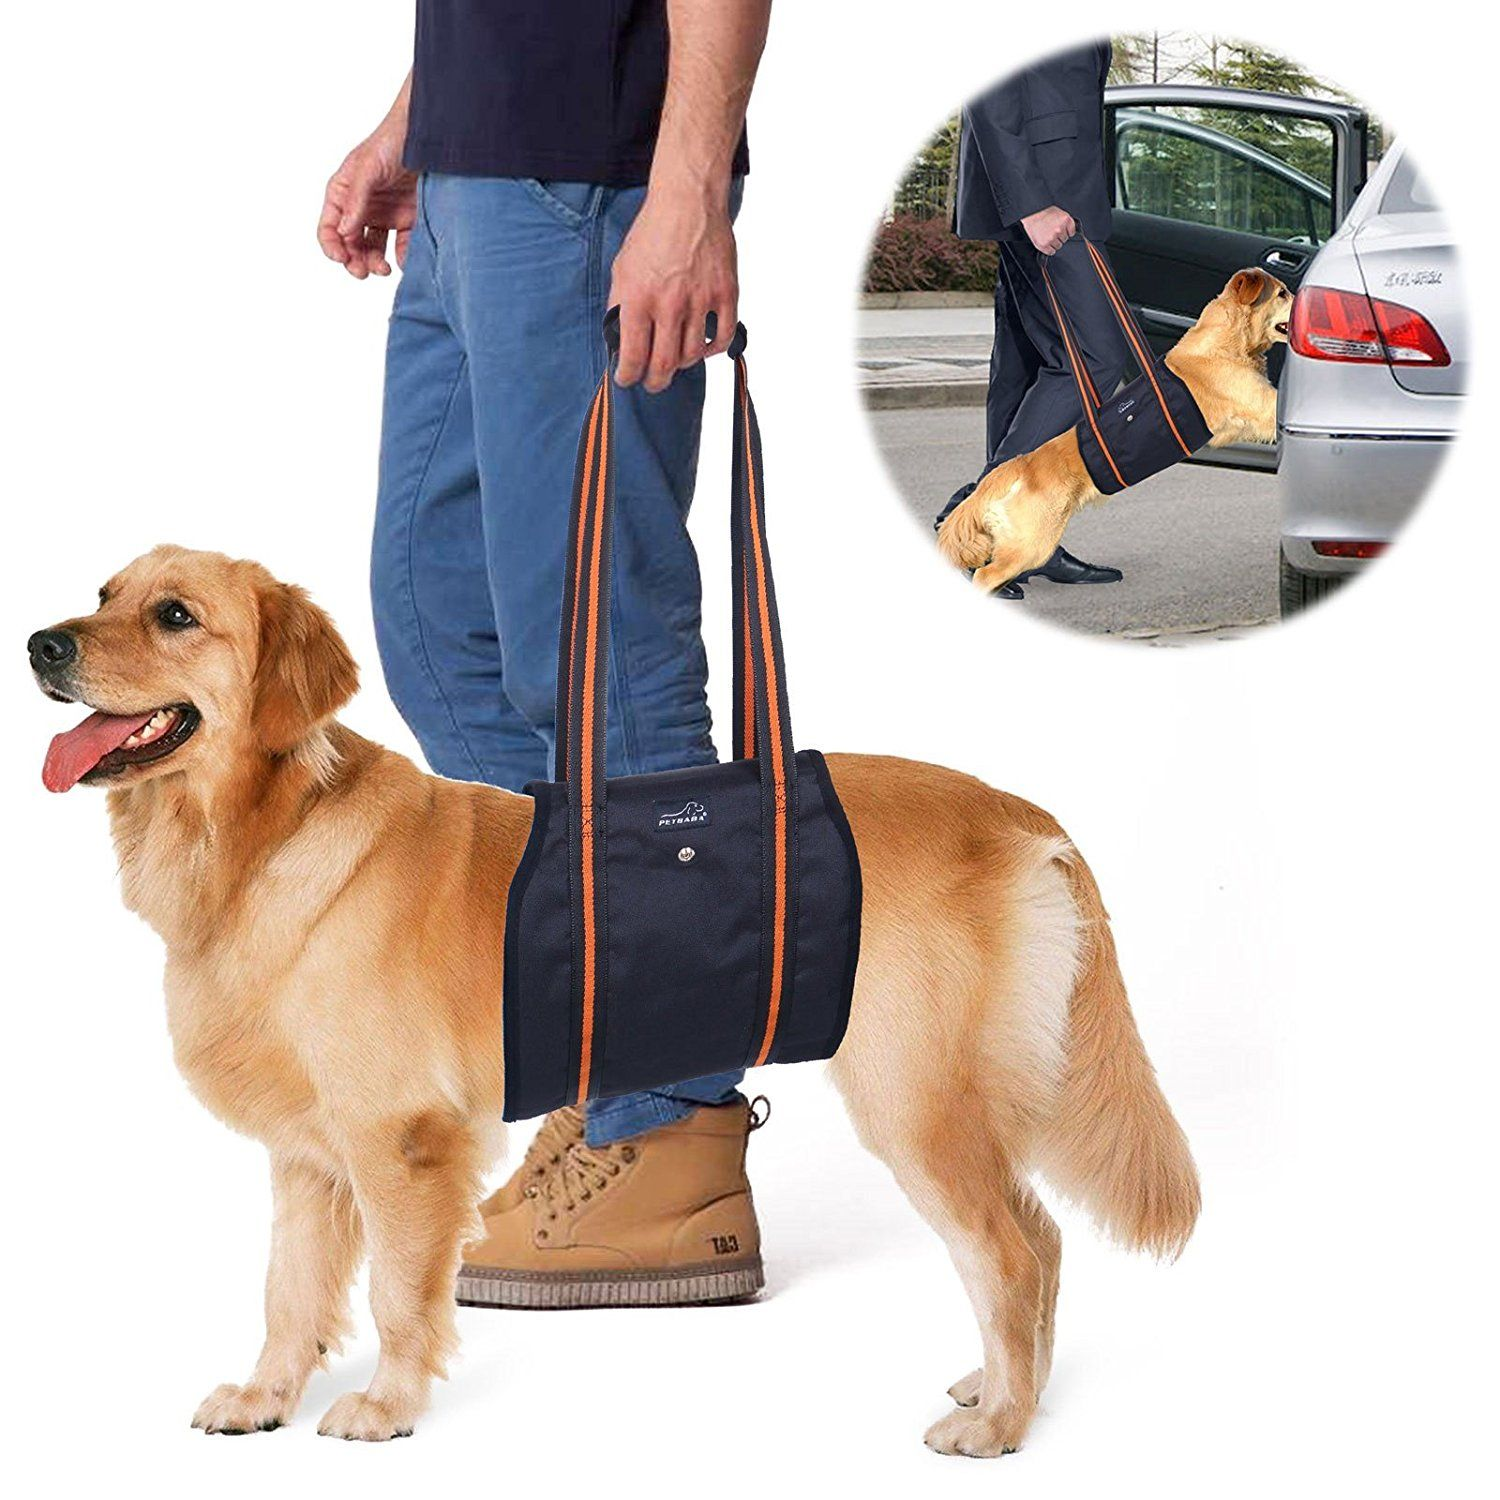 Dog Support Harness Petbaba Mobility Rehabilitation Sling Lift